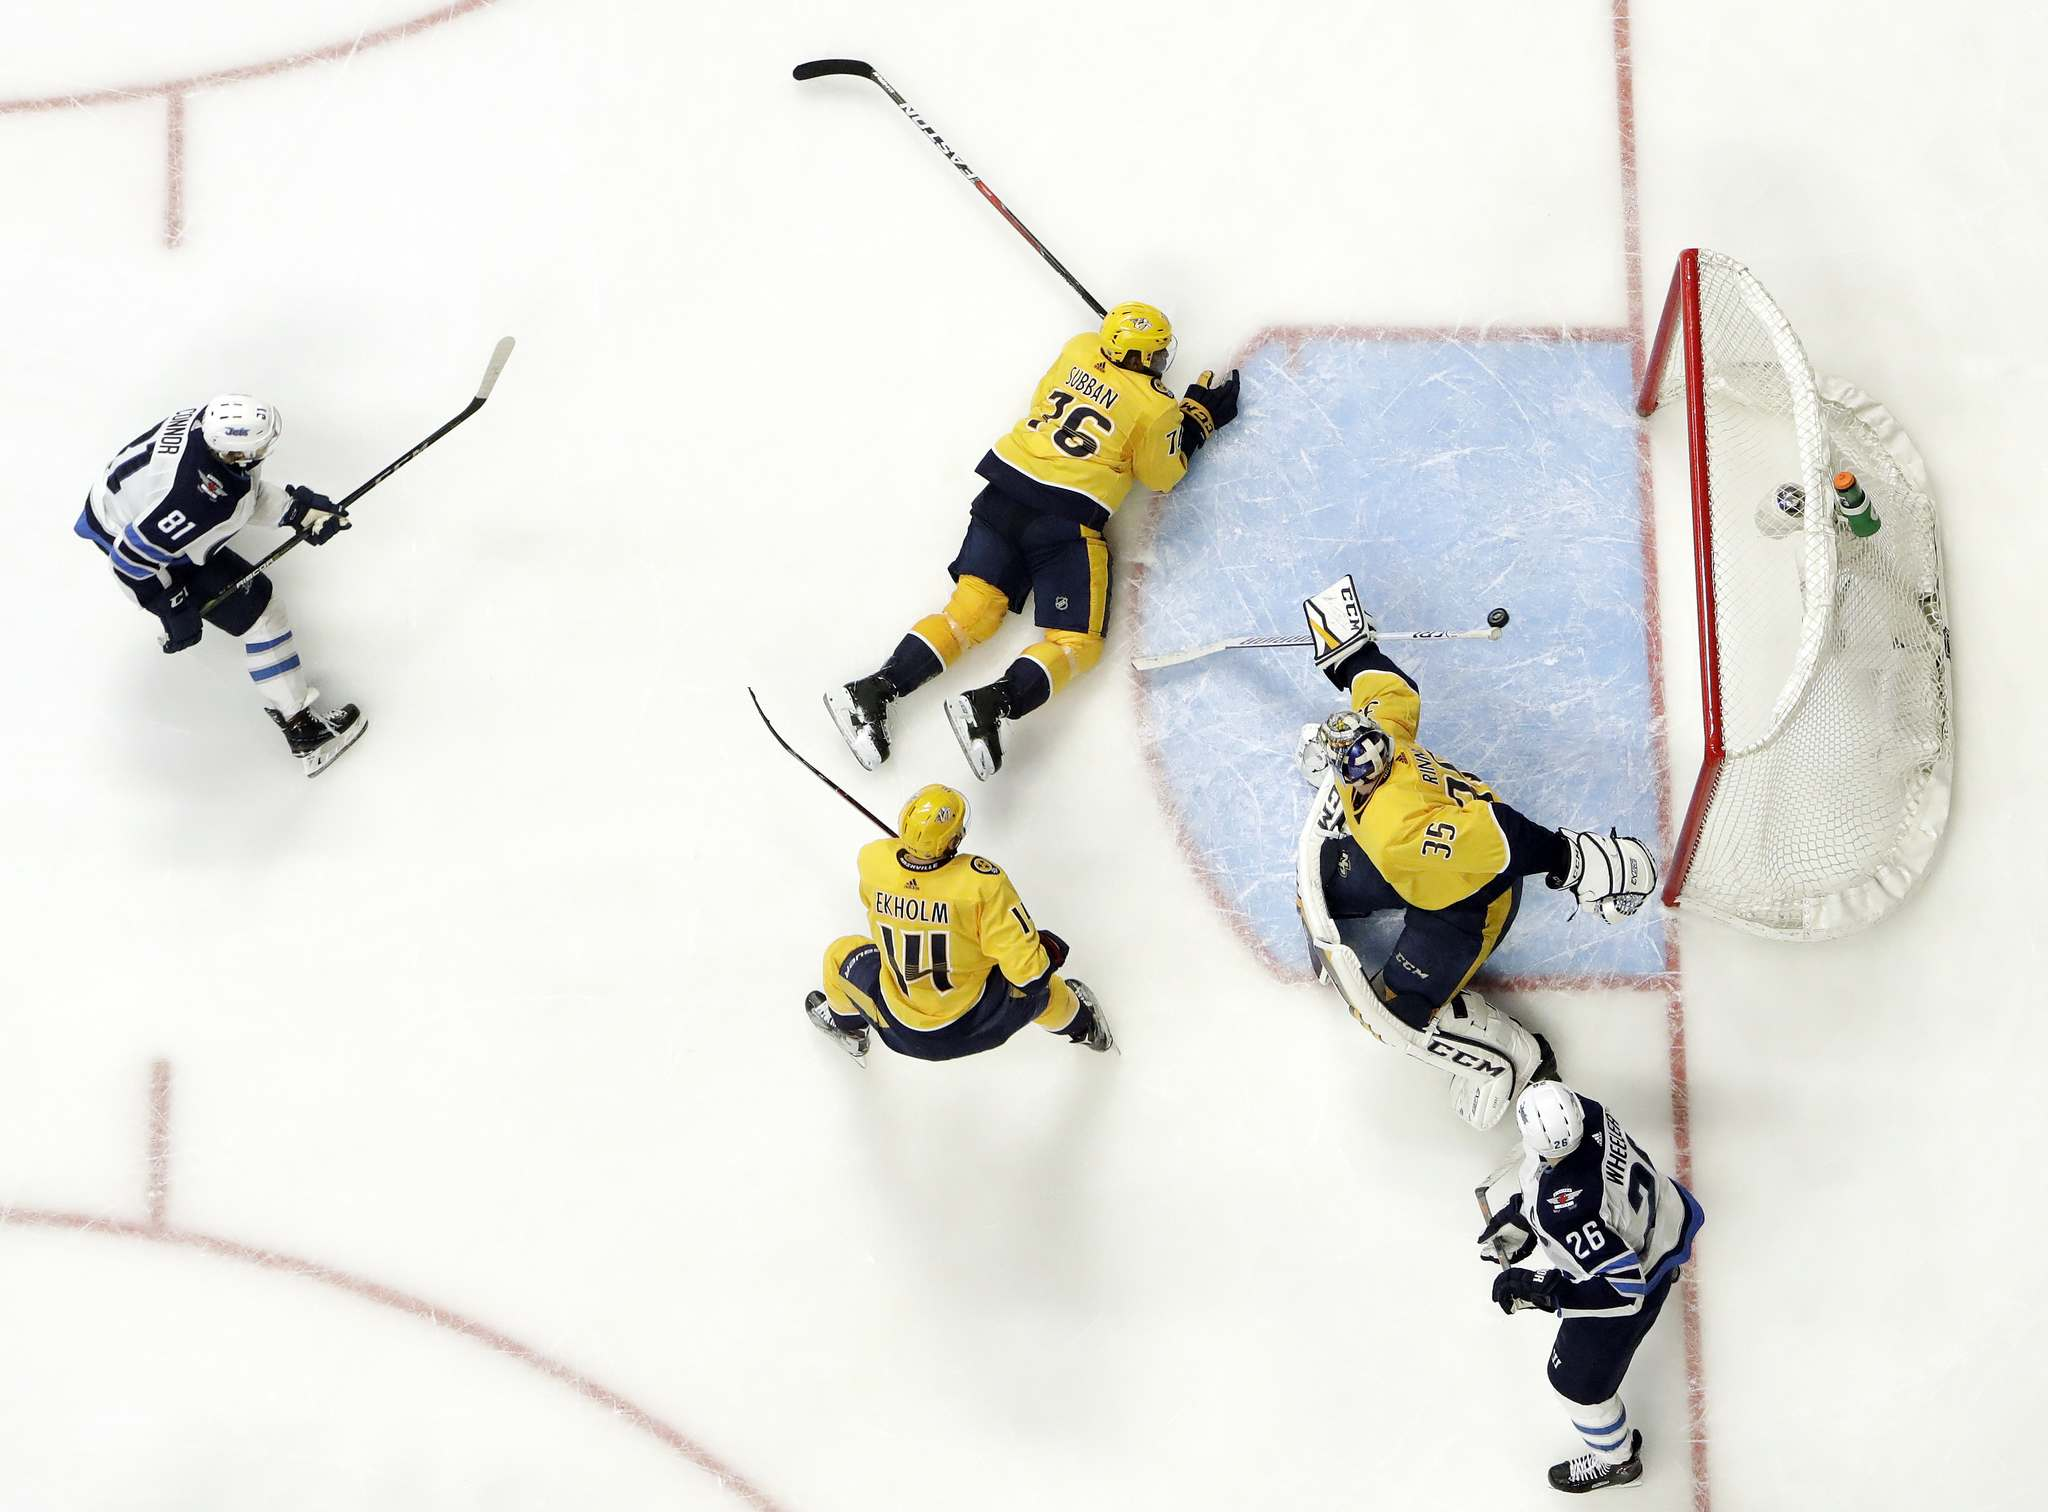 Winnipeg Jets left wing Kyle Connor (81) scores a goal against Nashville Predators goalie Pekka Rinne (35), of Finland, during the second period in Game 5 of an NHL hockey second-round playoff series Saturday, May 5, 2018, in Nashville, Tenn. Also defending for the Predators are Mattias Ekholm (14), of Sweden, and P.K. Subban (76). (AP Photo/Mark Humphrey)</p>